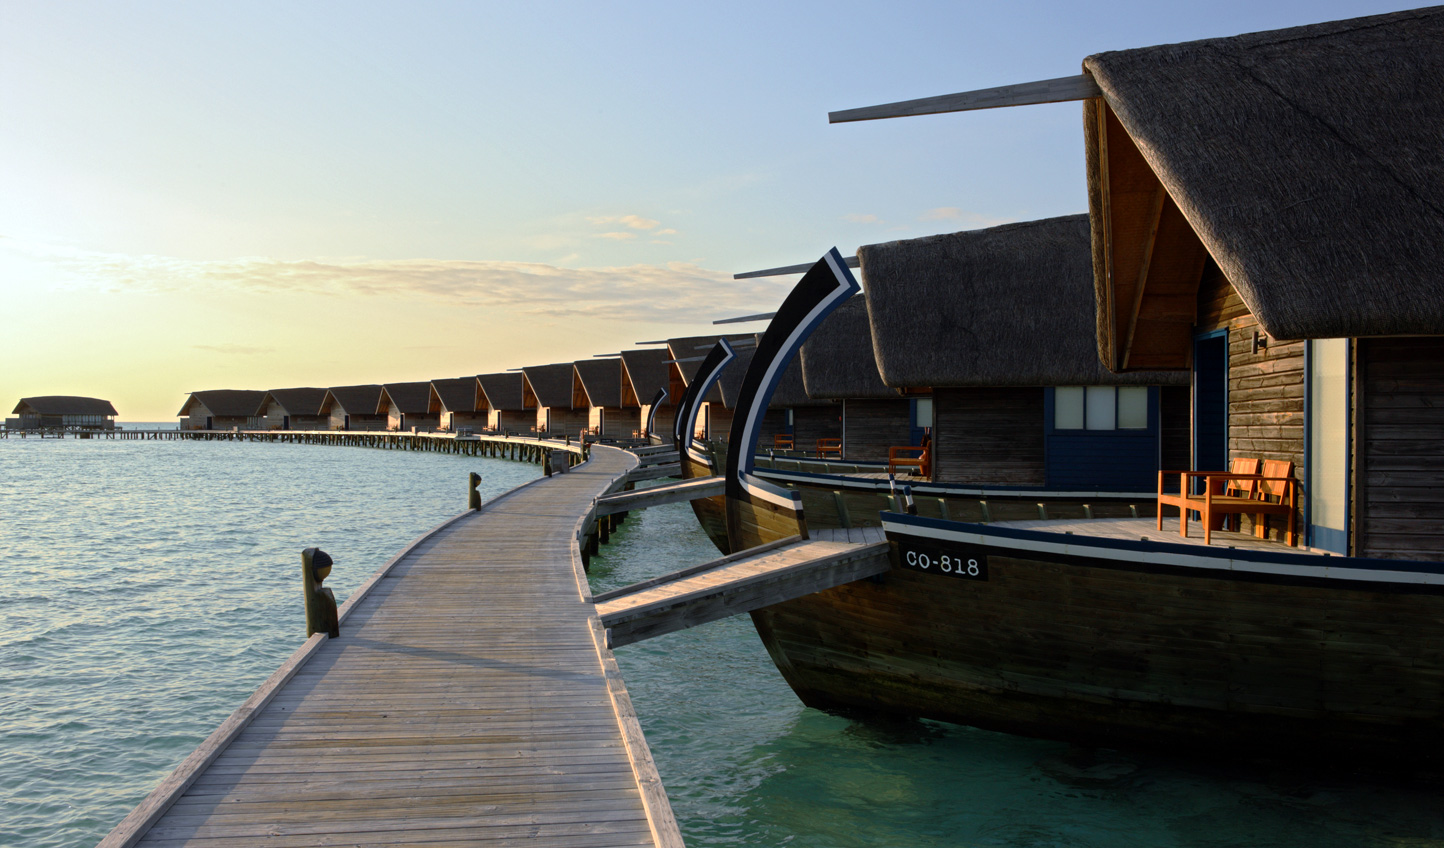 Villa architecture takes its inspiration from traditional Maldivian dhonis